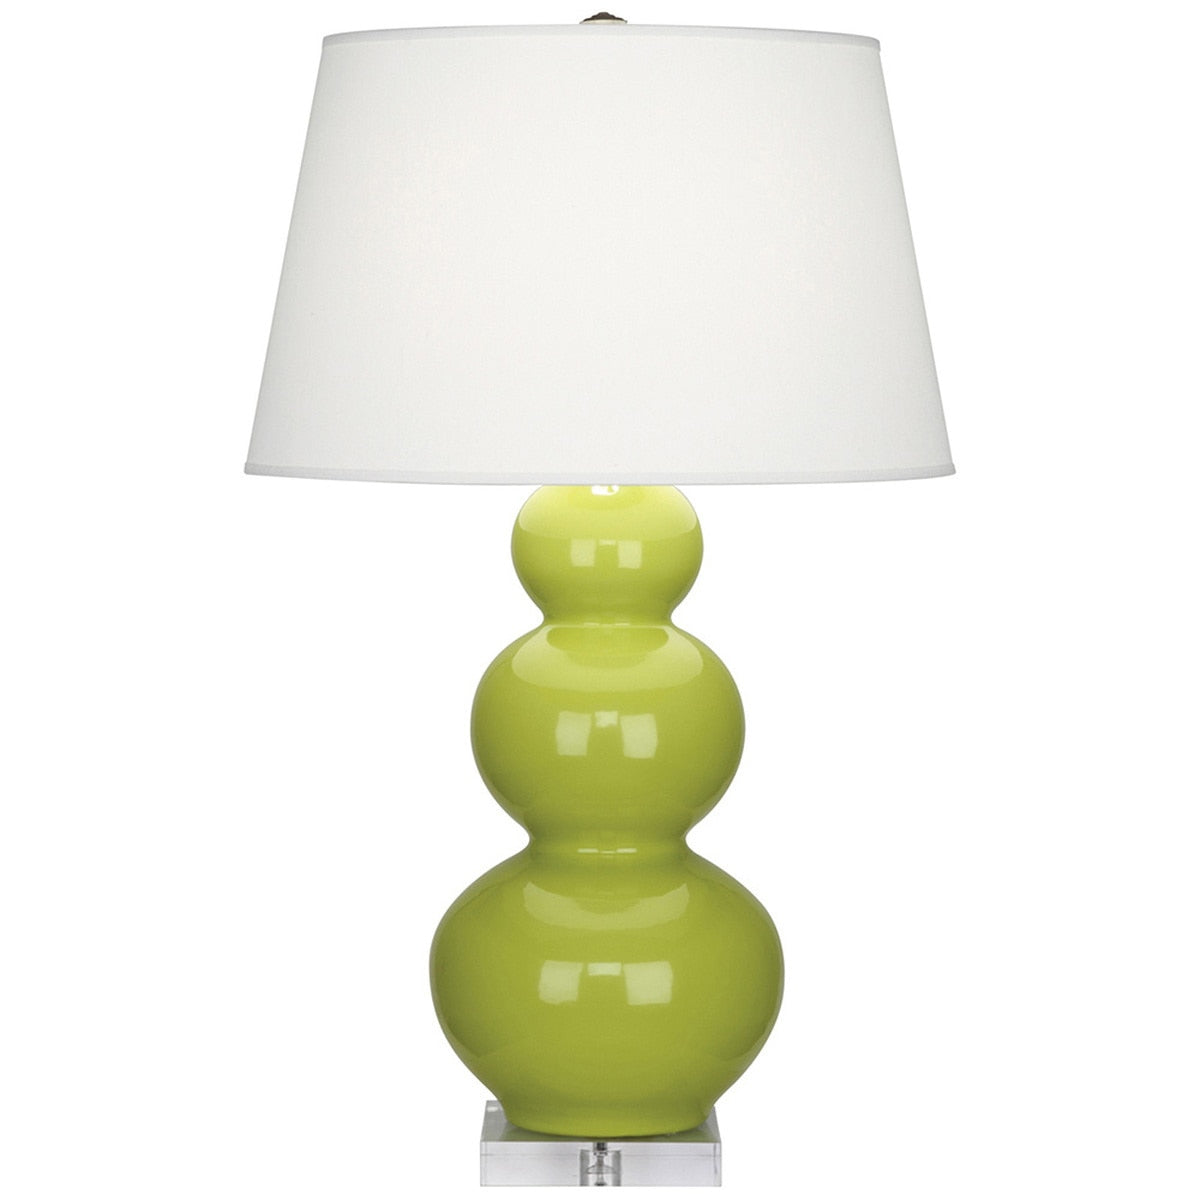 Furbish Studio - Laguna Gourd Lamp with Apple Green Base and White Shade with clear lucite foot